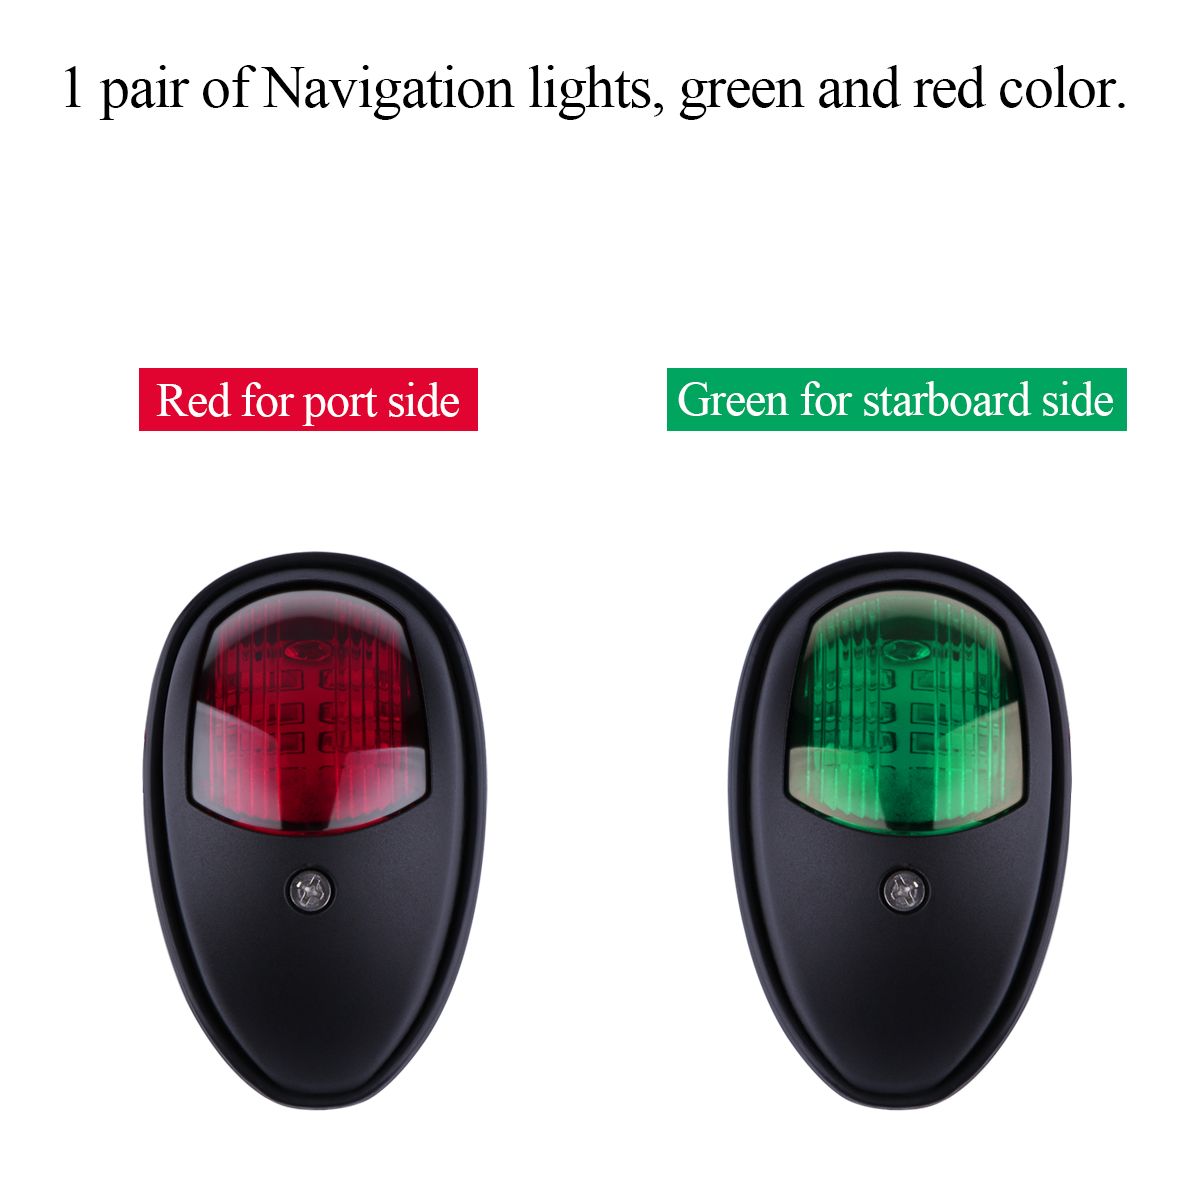 1 pair of navigation lights green and red color red for port side and green for starboard side it can be use as bow light stern light or running light  [ 1200 x 1200 Pixel ]